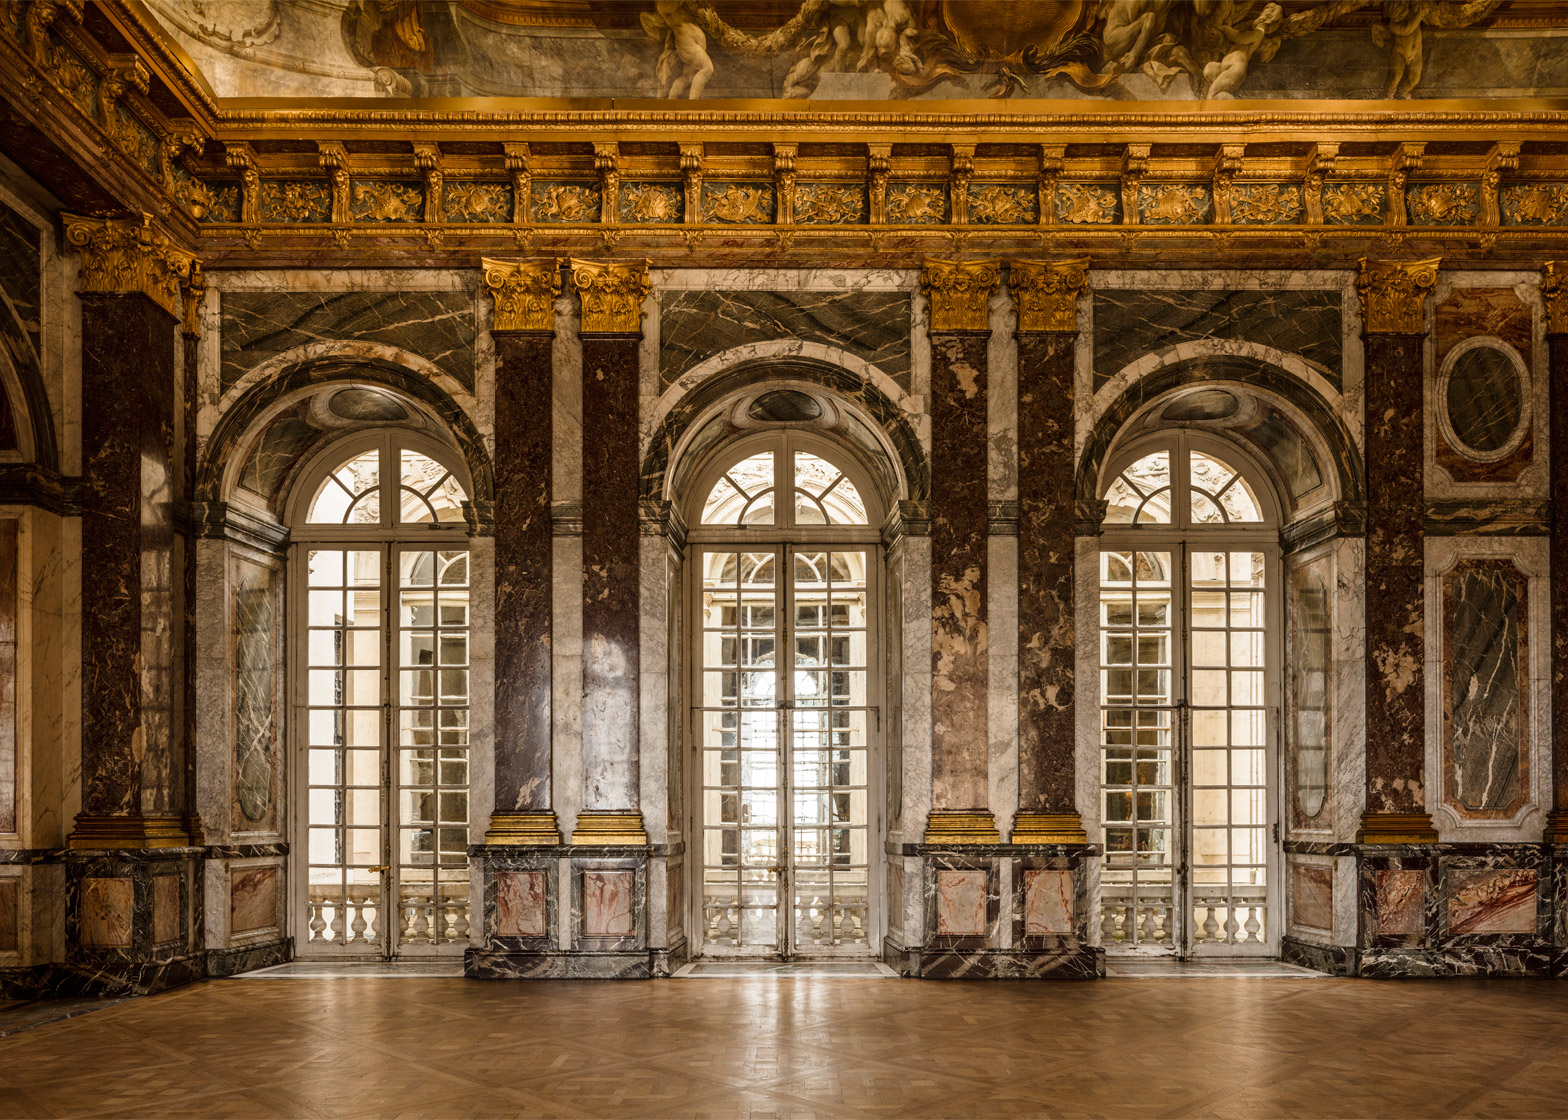 The Curios Museum by Olafur Eliasson at the Palace of Versailles, France